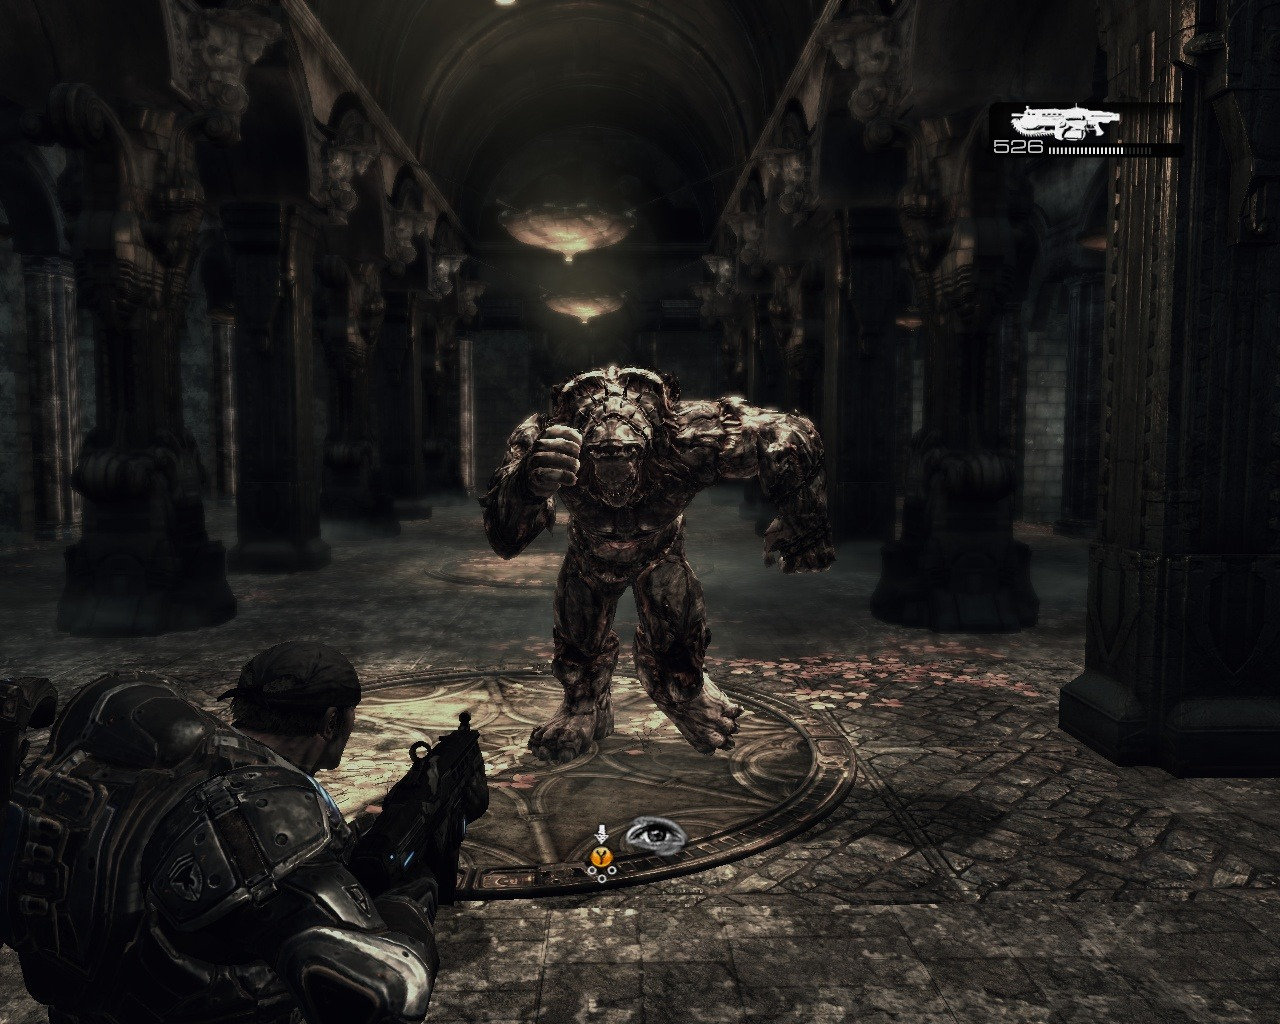 Gears Of War Pc Crack Razor1911 Download [WORK] gowapc012